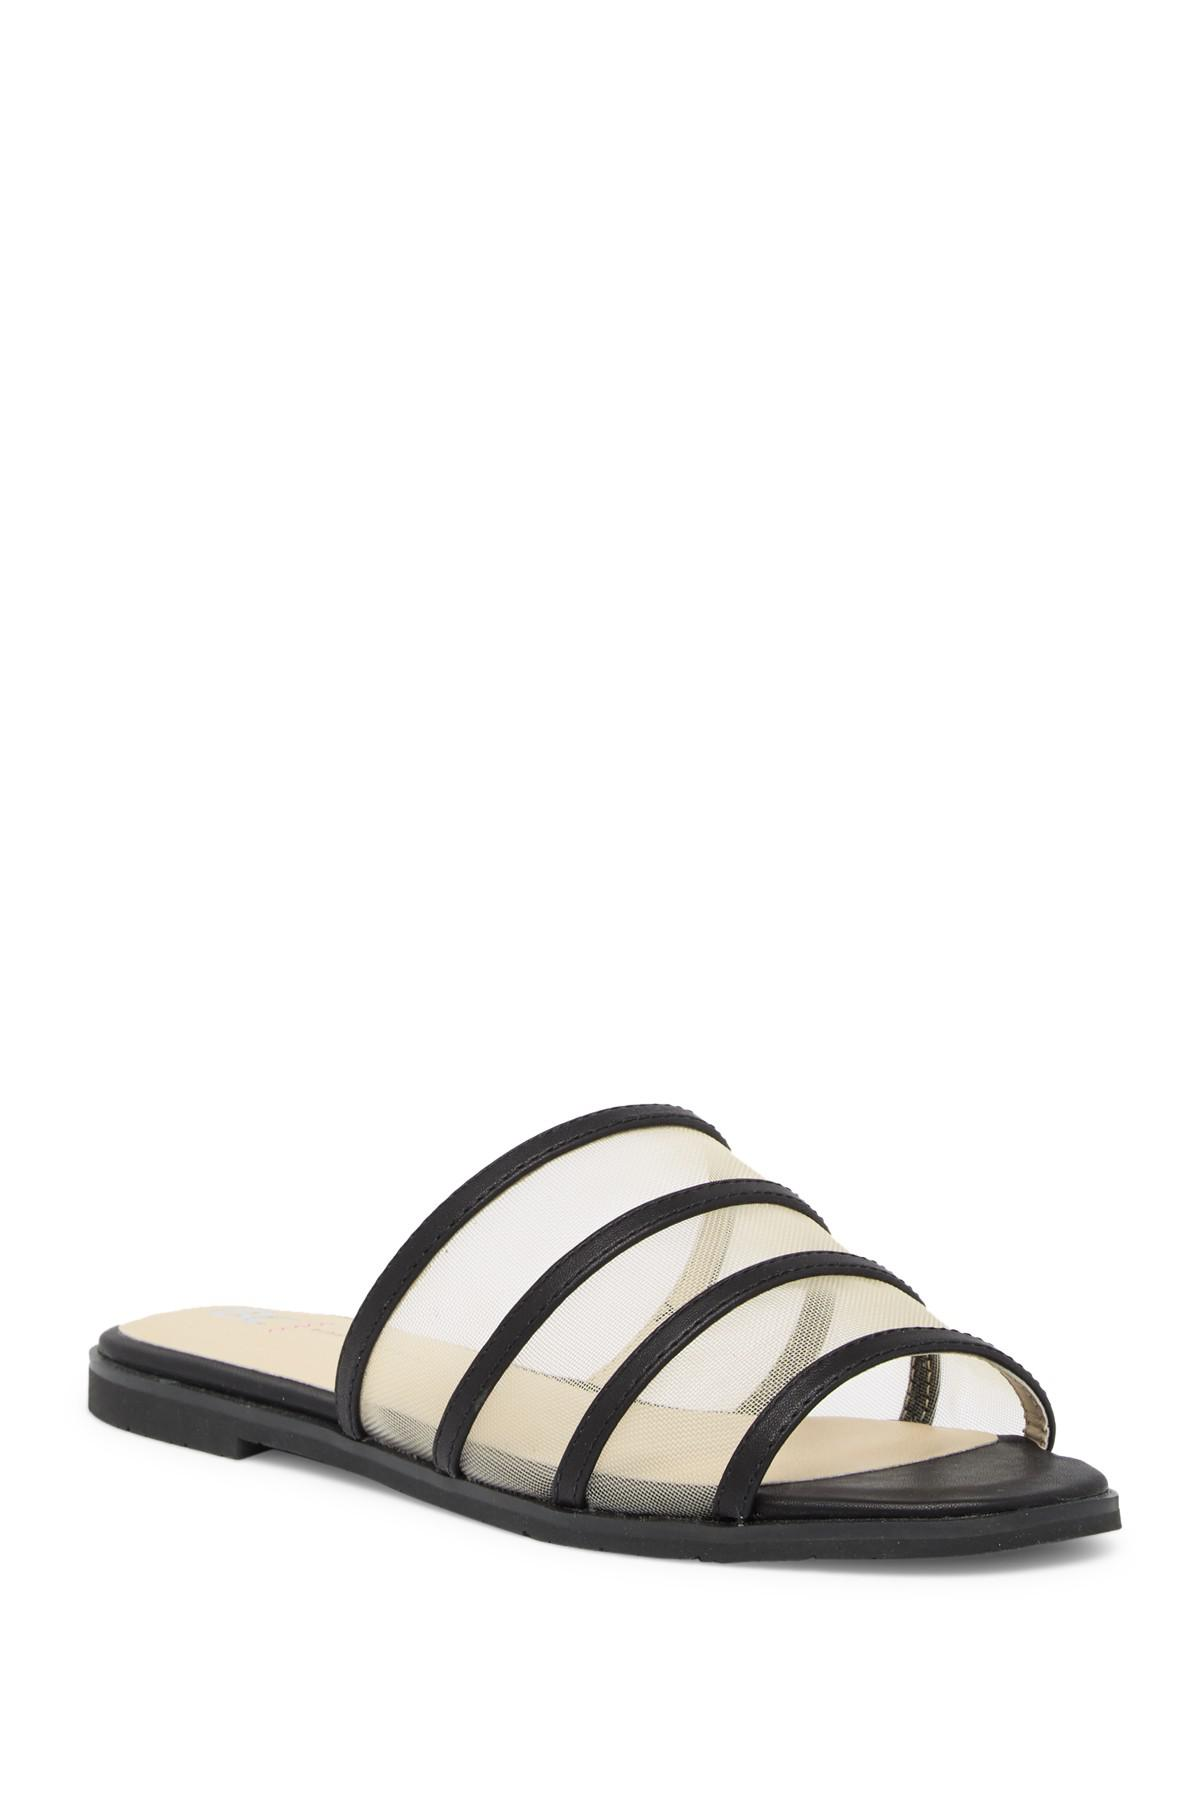 BC Footwear Show Me How Vegan Sandal